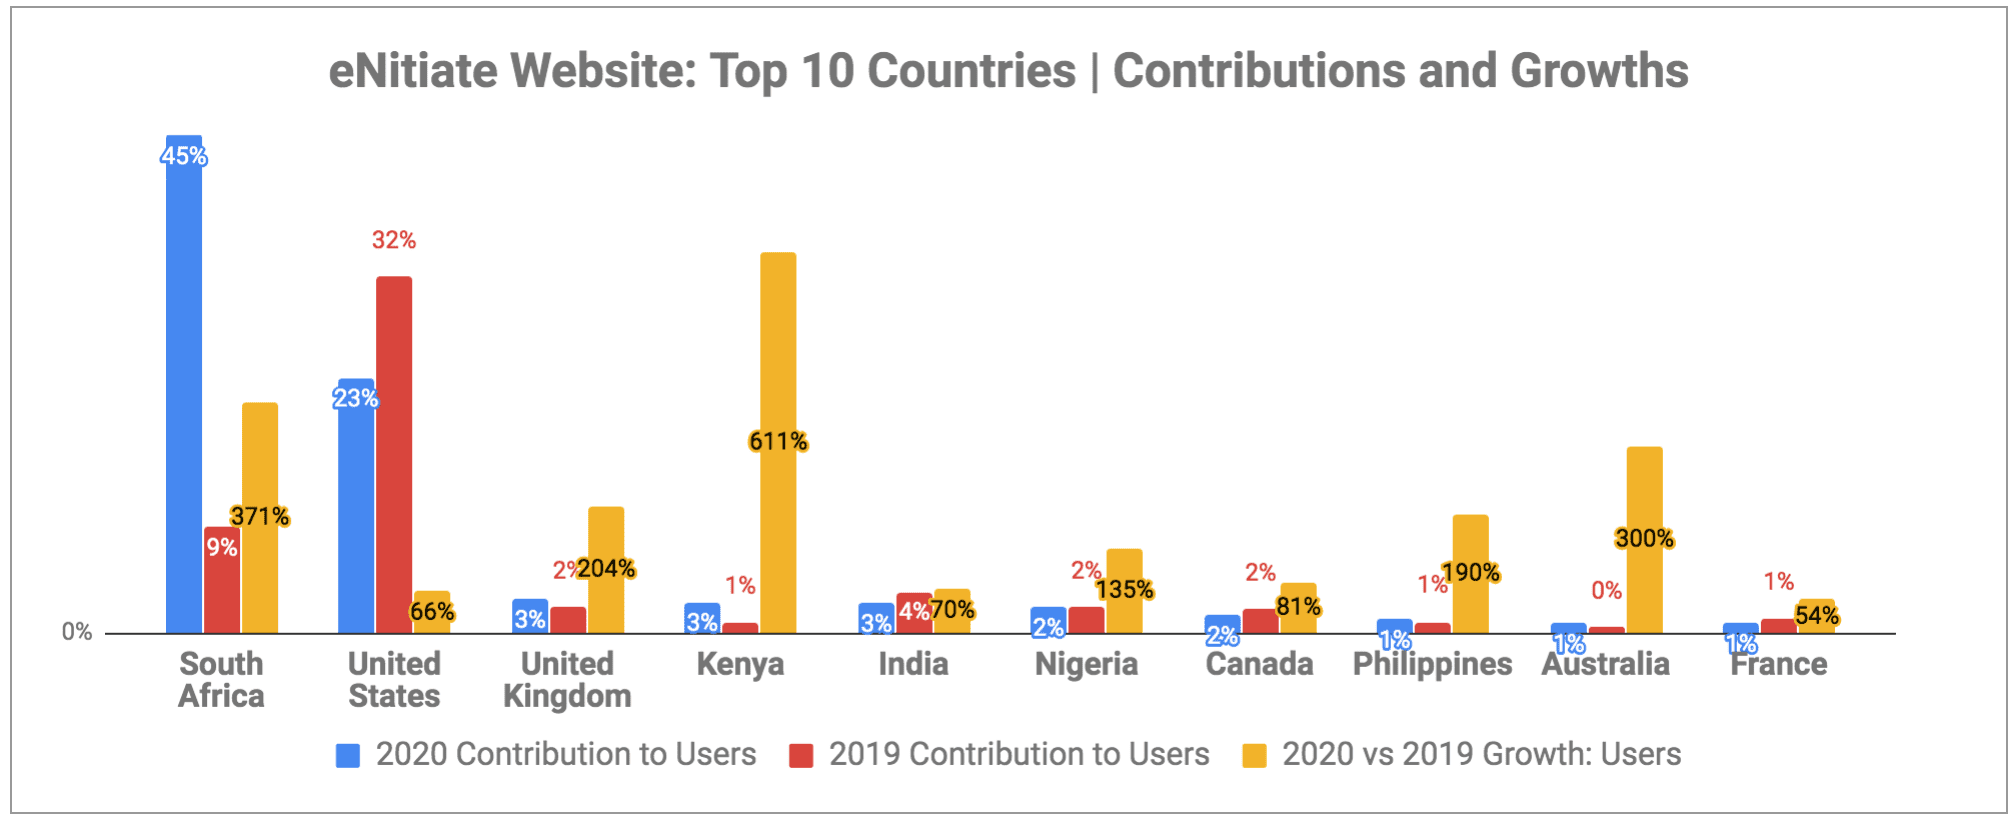 eNitiate Website | Google Analytics | Top 10 Countries: User Contributions and Growths | 2020 vs 2019